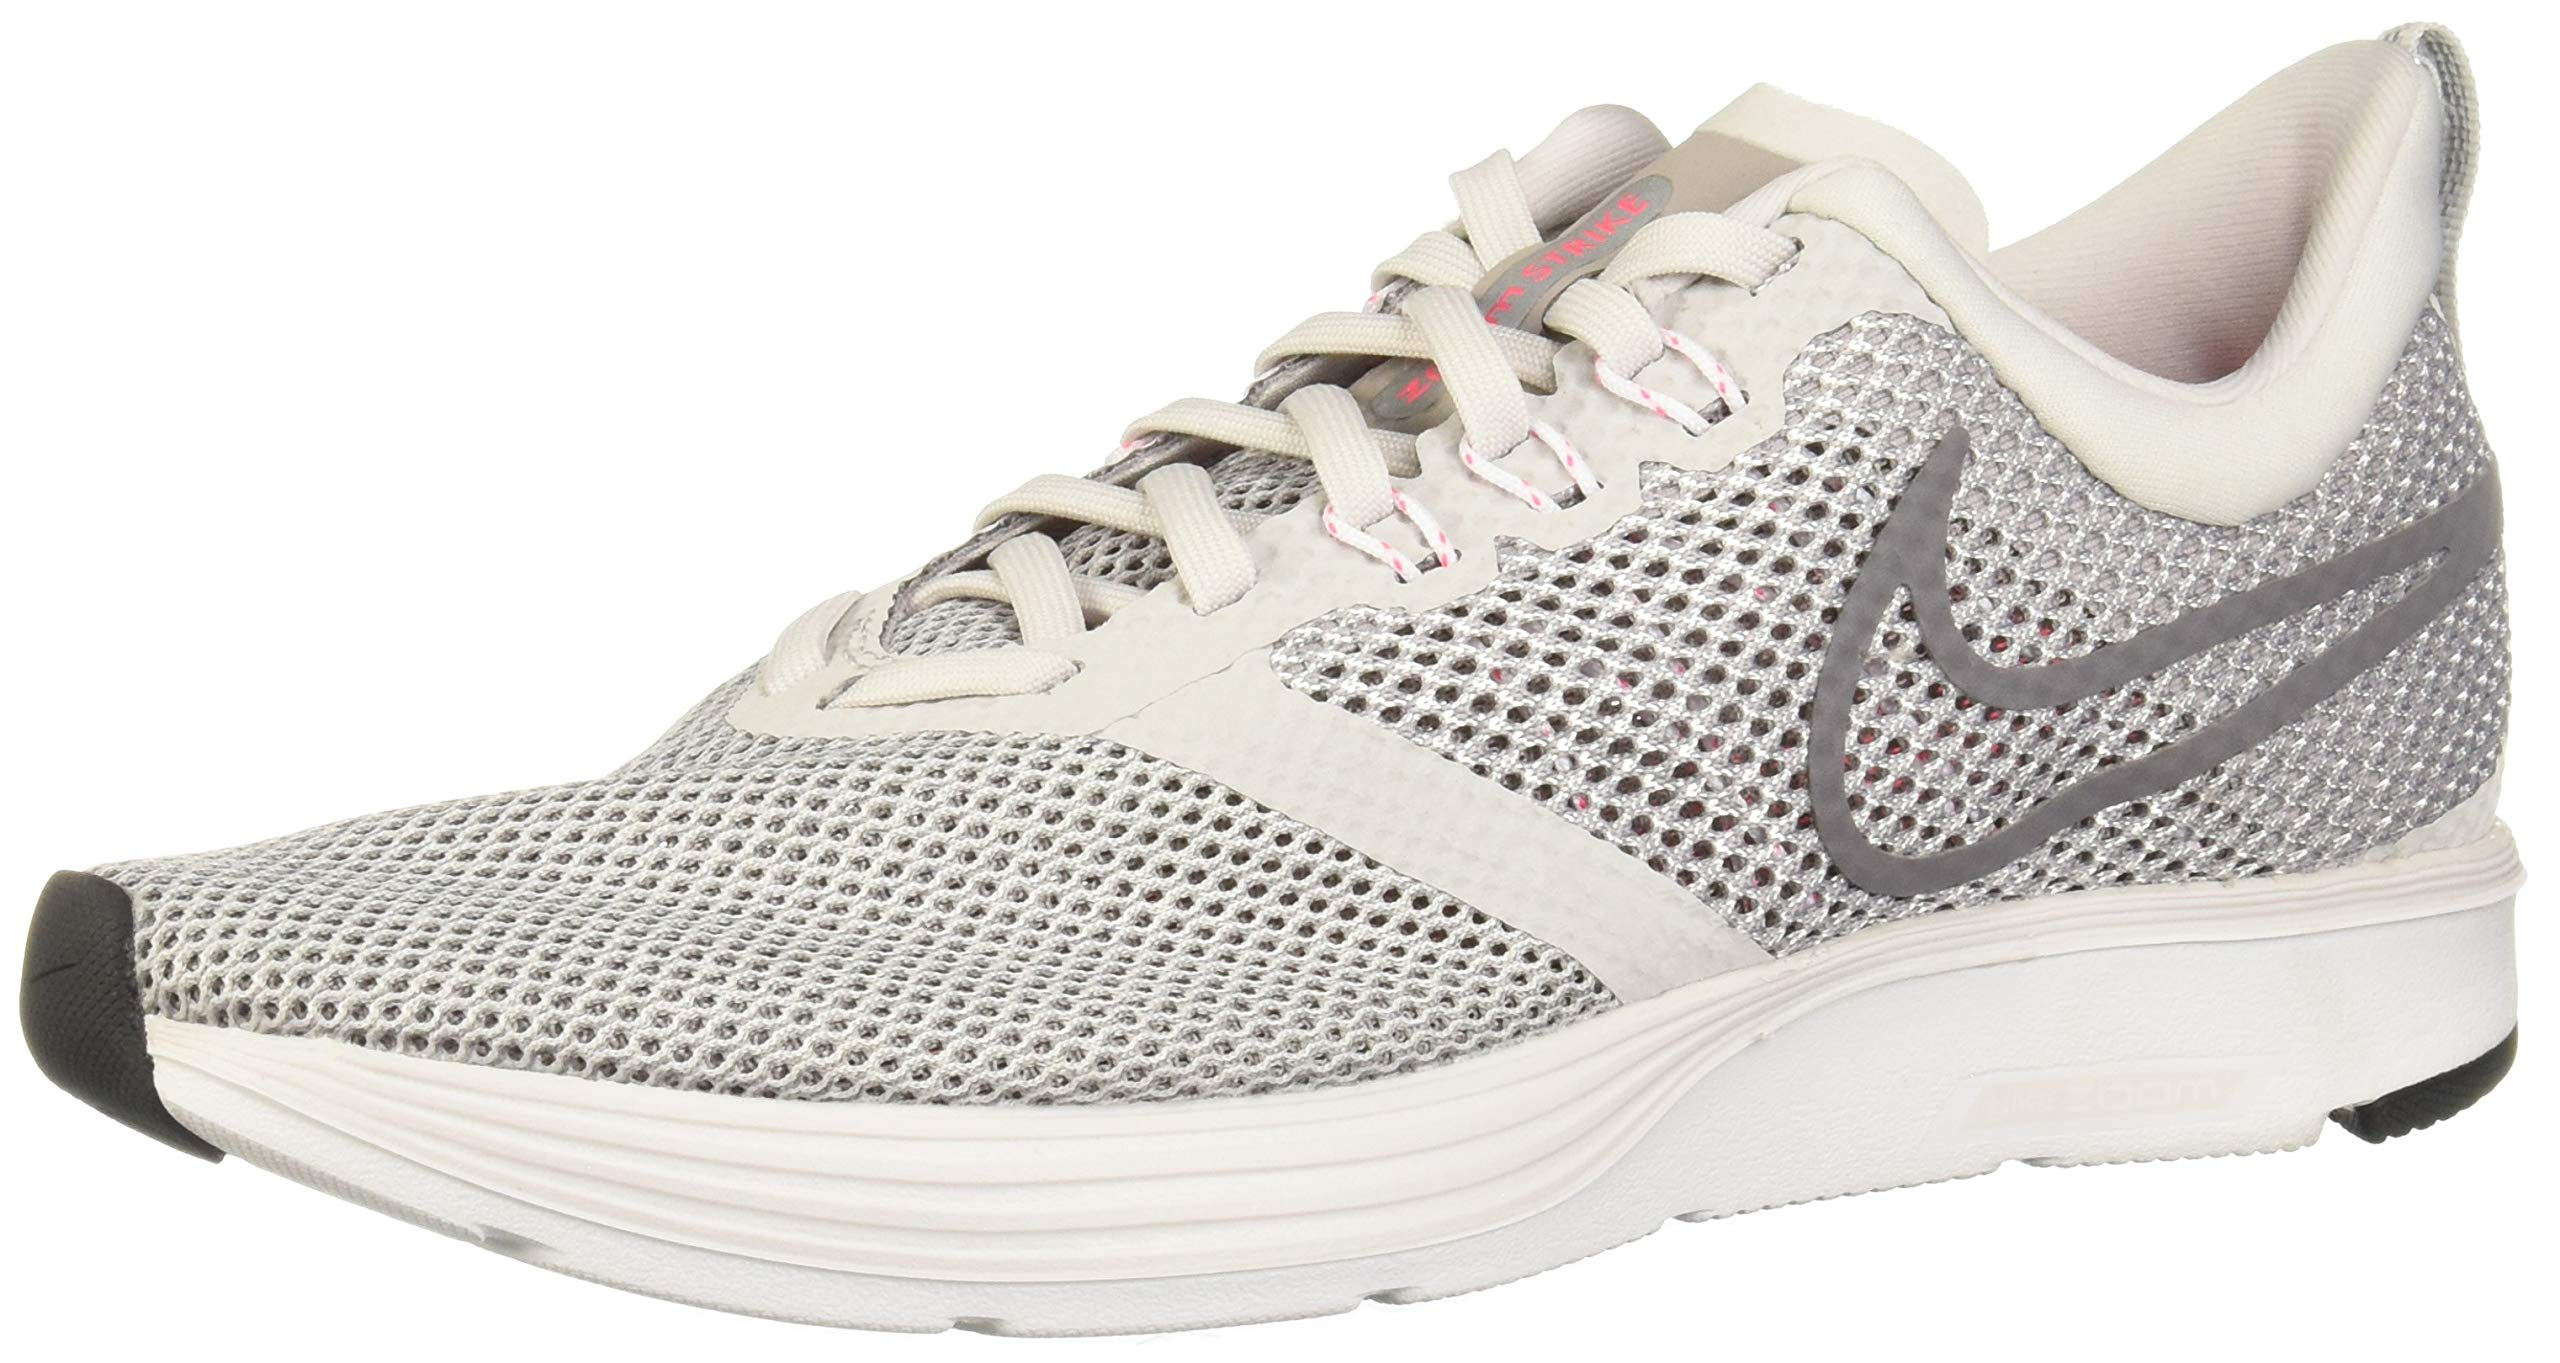 Nike Women's Zoom Strike Vast Grey/Gunsmoke Ankle-High Running Shoe - 6.5M